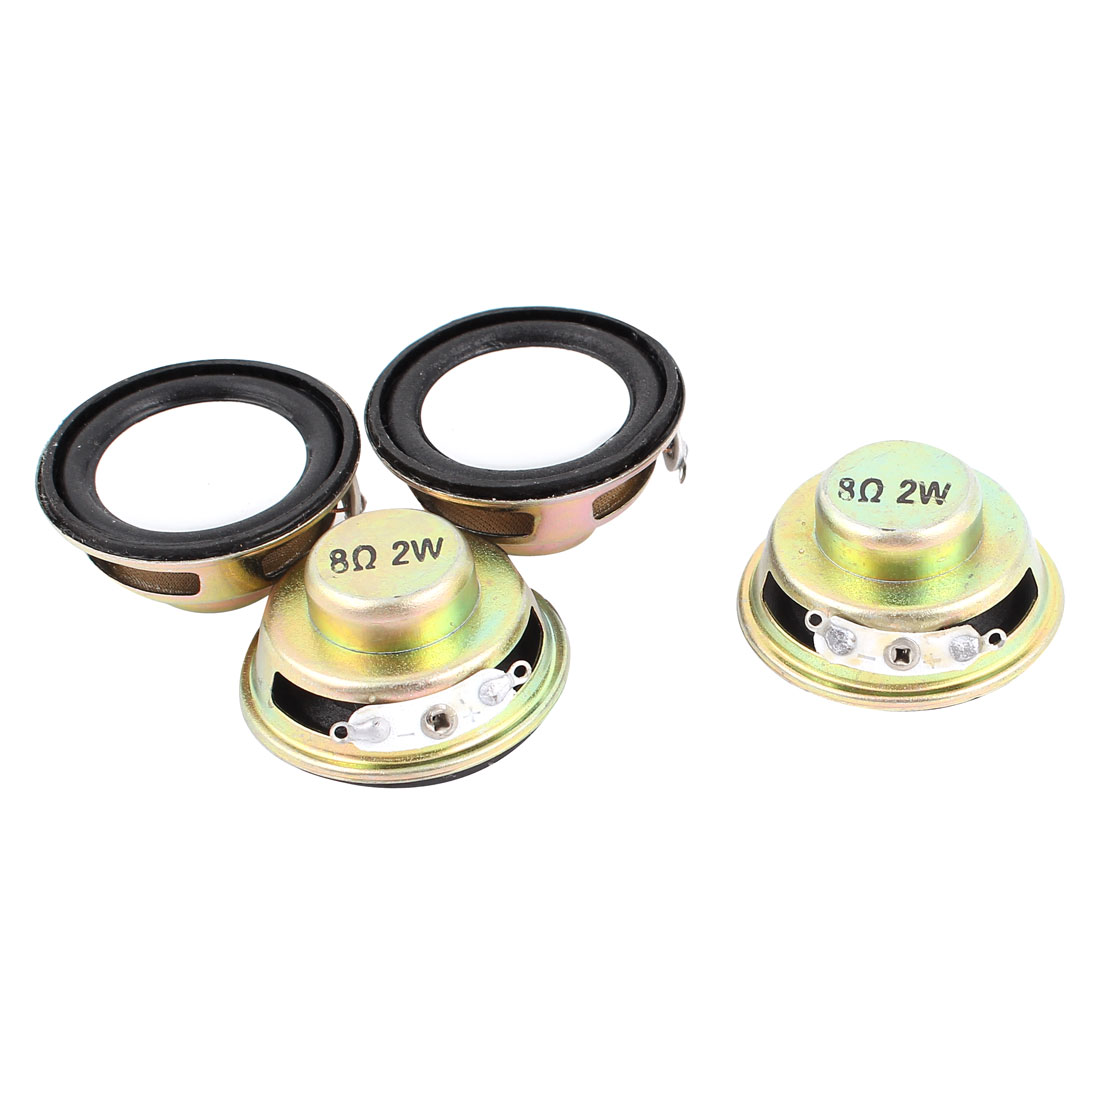 4pcs 8Ohm 2W 36mm Dia Computer Audio Woofer Speaker Horn